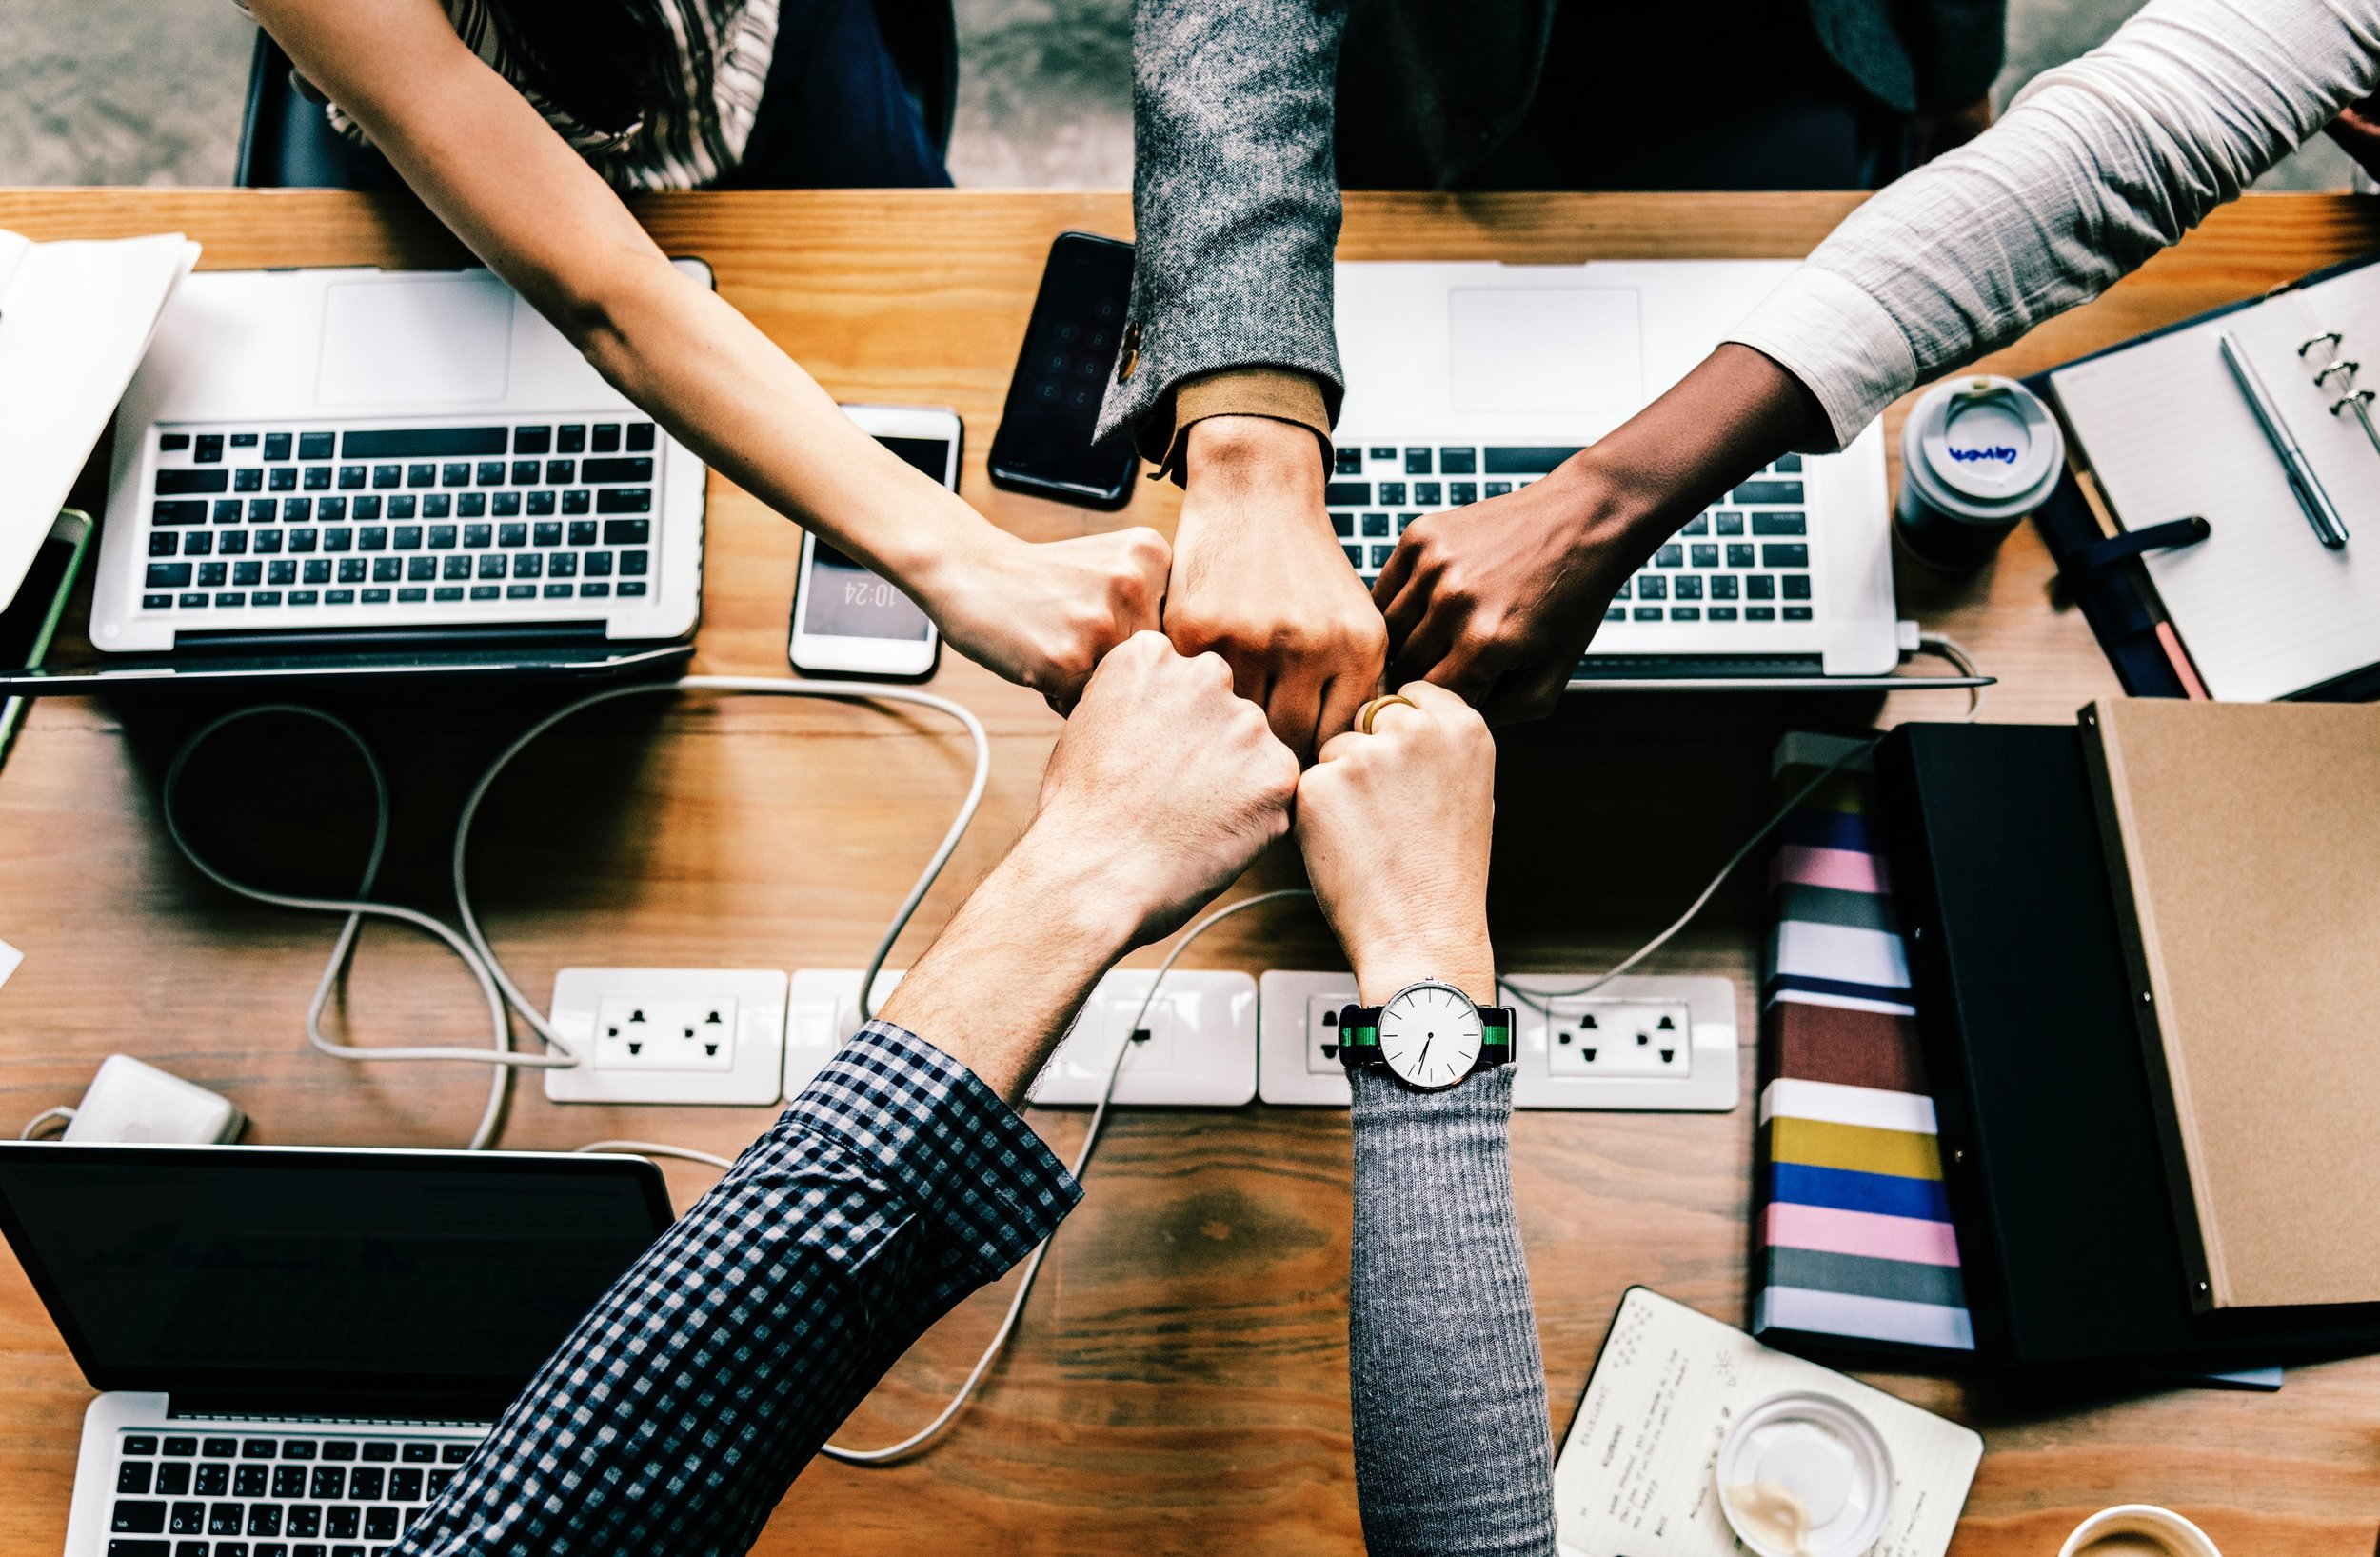 Creating a virtuous circle of high employee commitment and performance   When Propensity Management is fully implemented, you optimize employees' suitability for their roles in your organization, which dramatically raises employee achievement, satisfaction, and success.